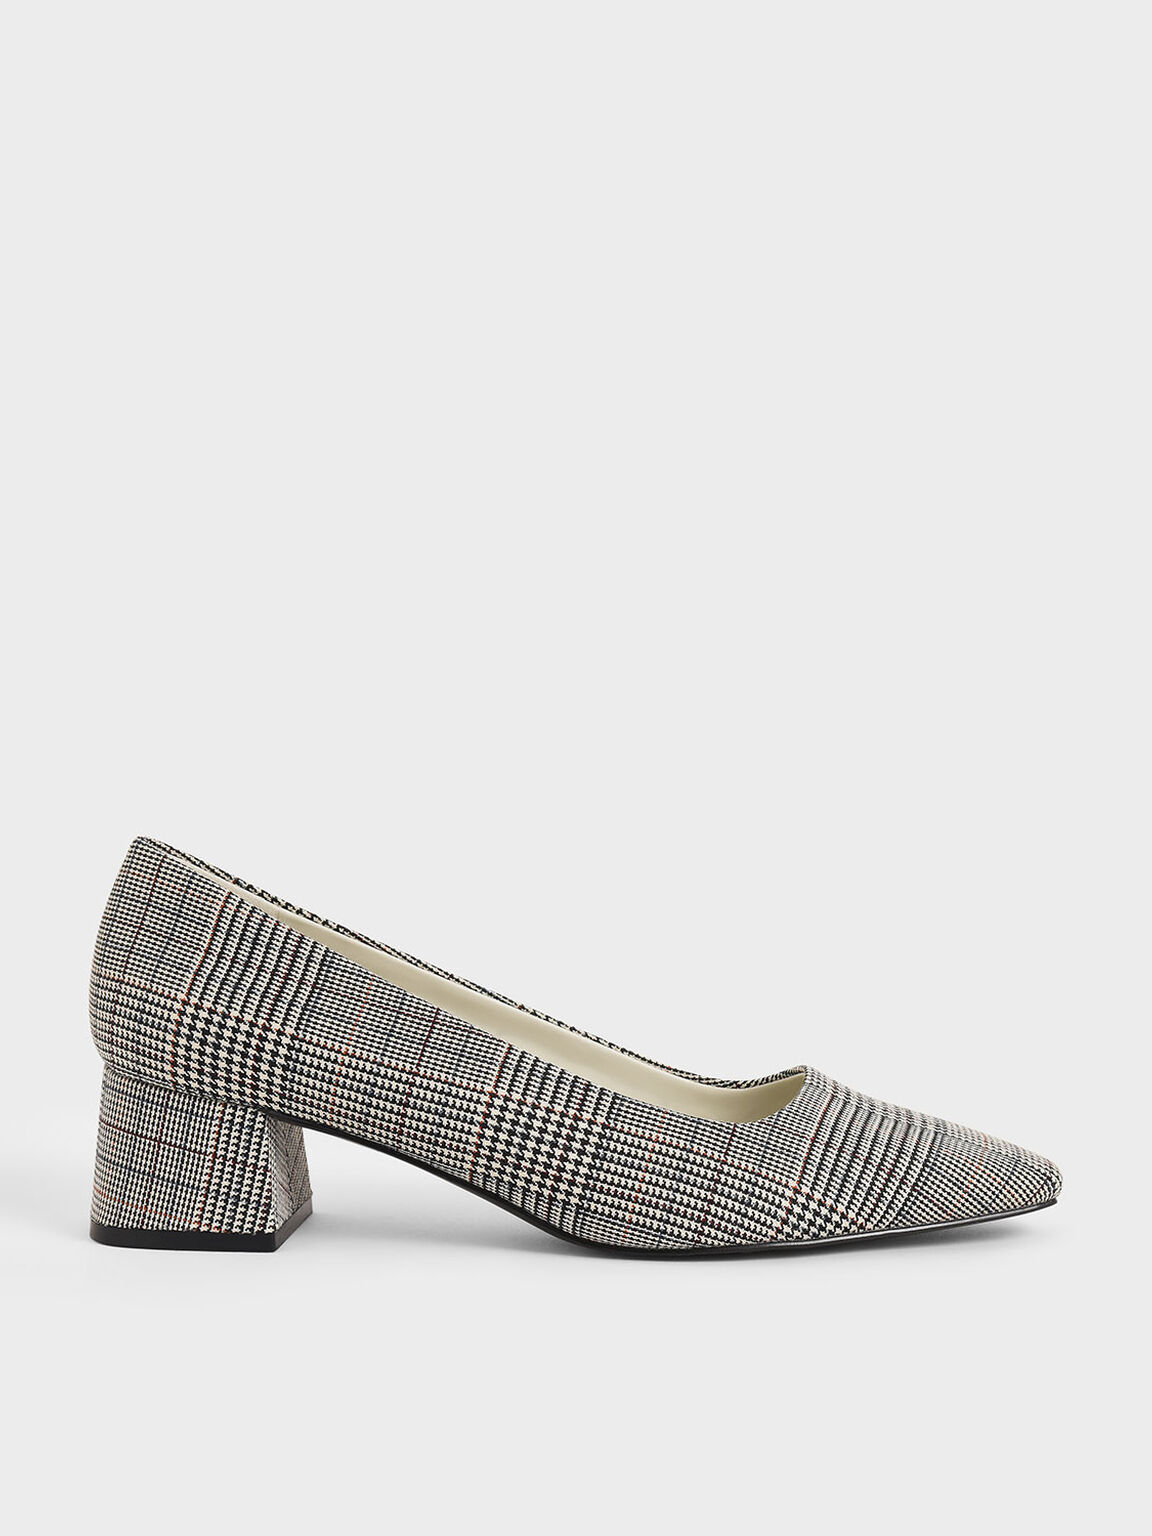 Check Print Square Toe Block Heel Pumps, Light Grey, hi-res